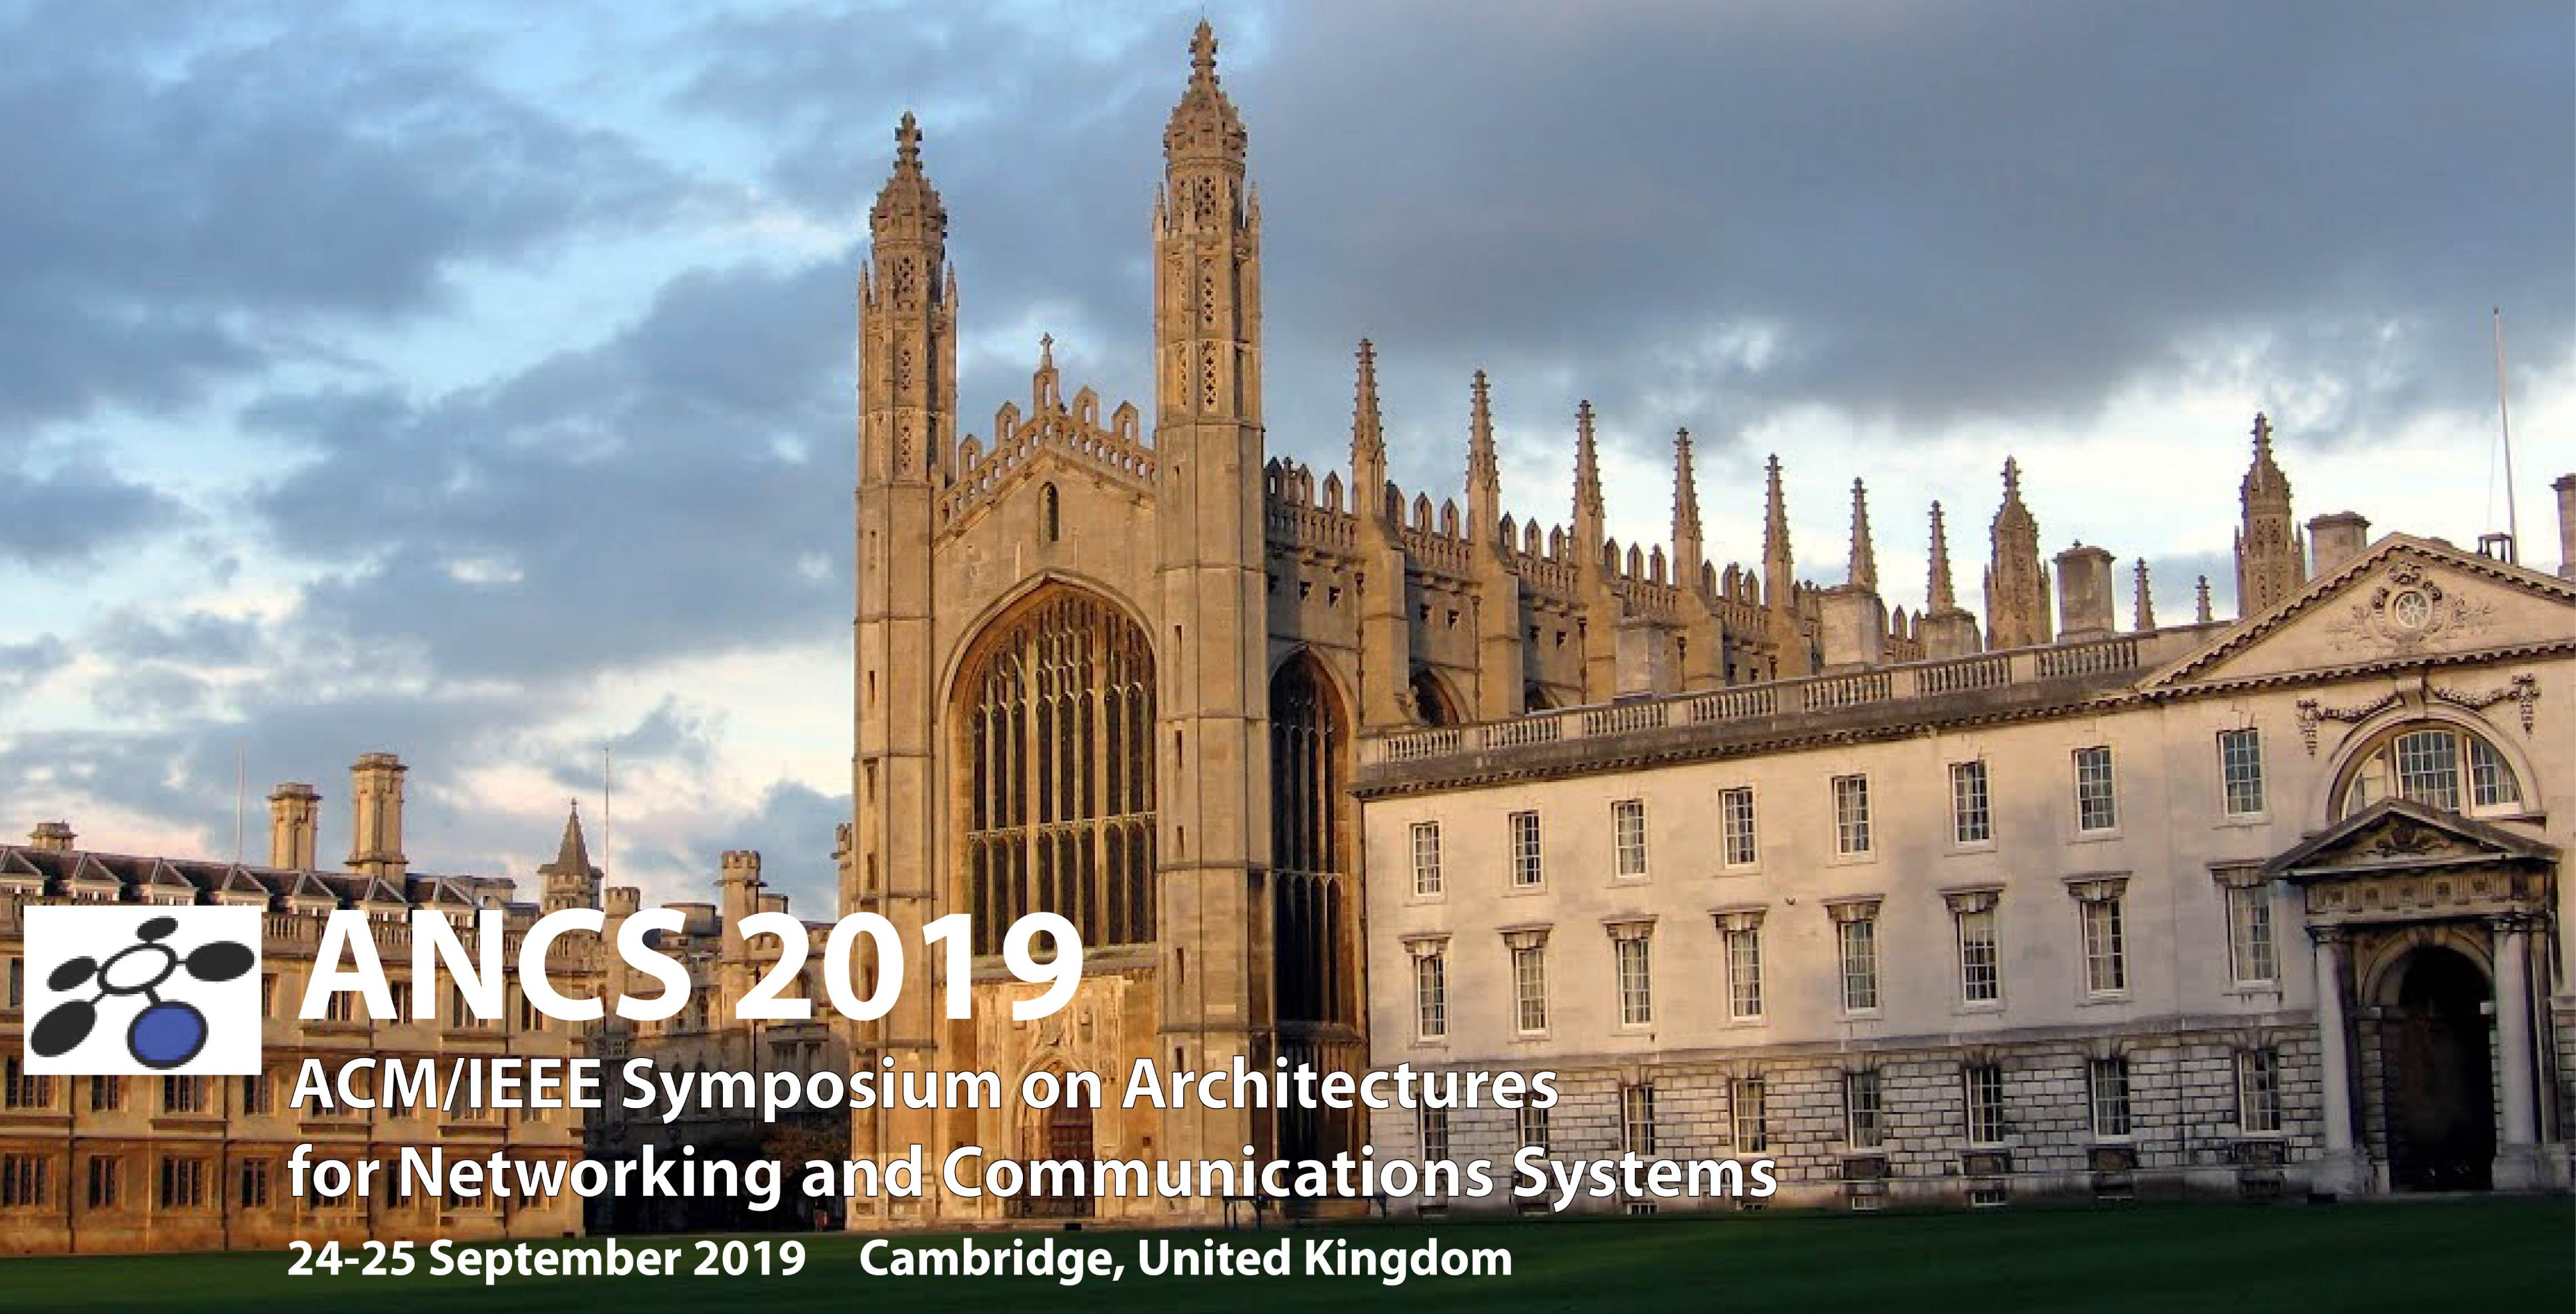 2019 ACM/IEEE Symposium on Architectures for Networking and Communications Systems (ANCS)